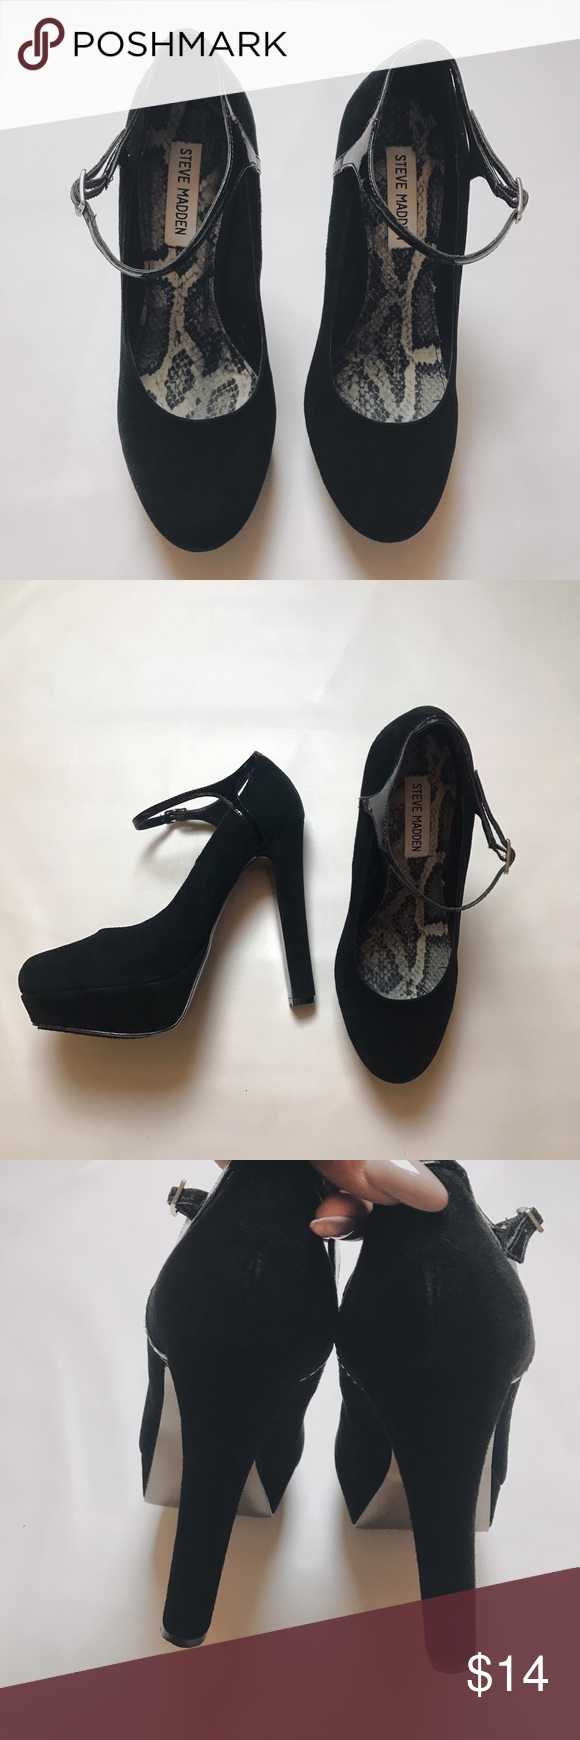 Steve Madden 👠 👠Size 8.5 Good condition . 🌪Same Day